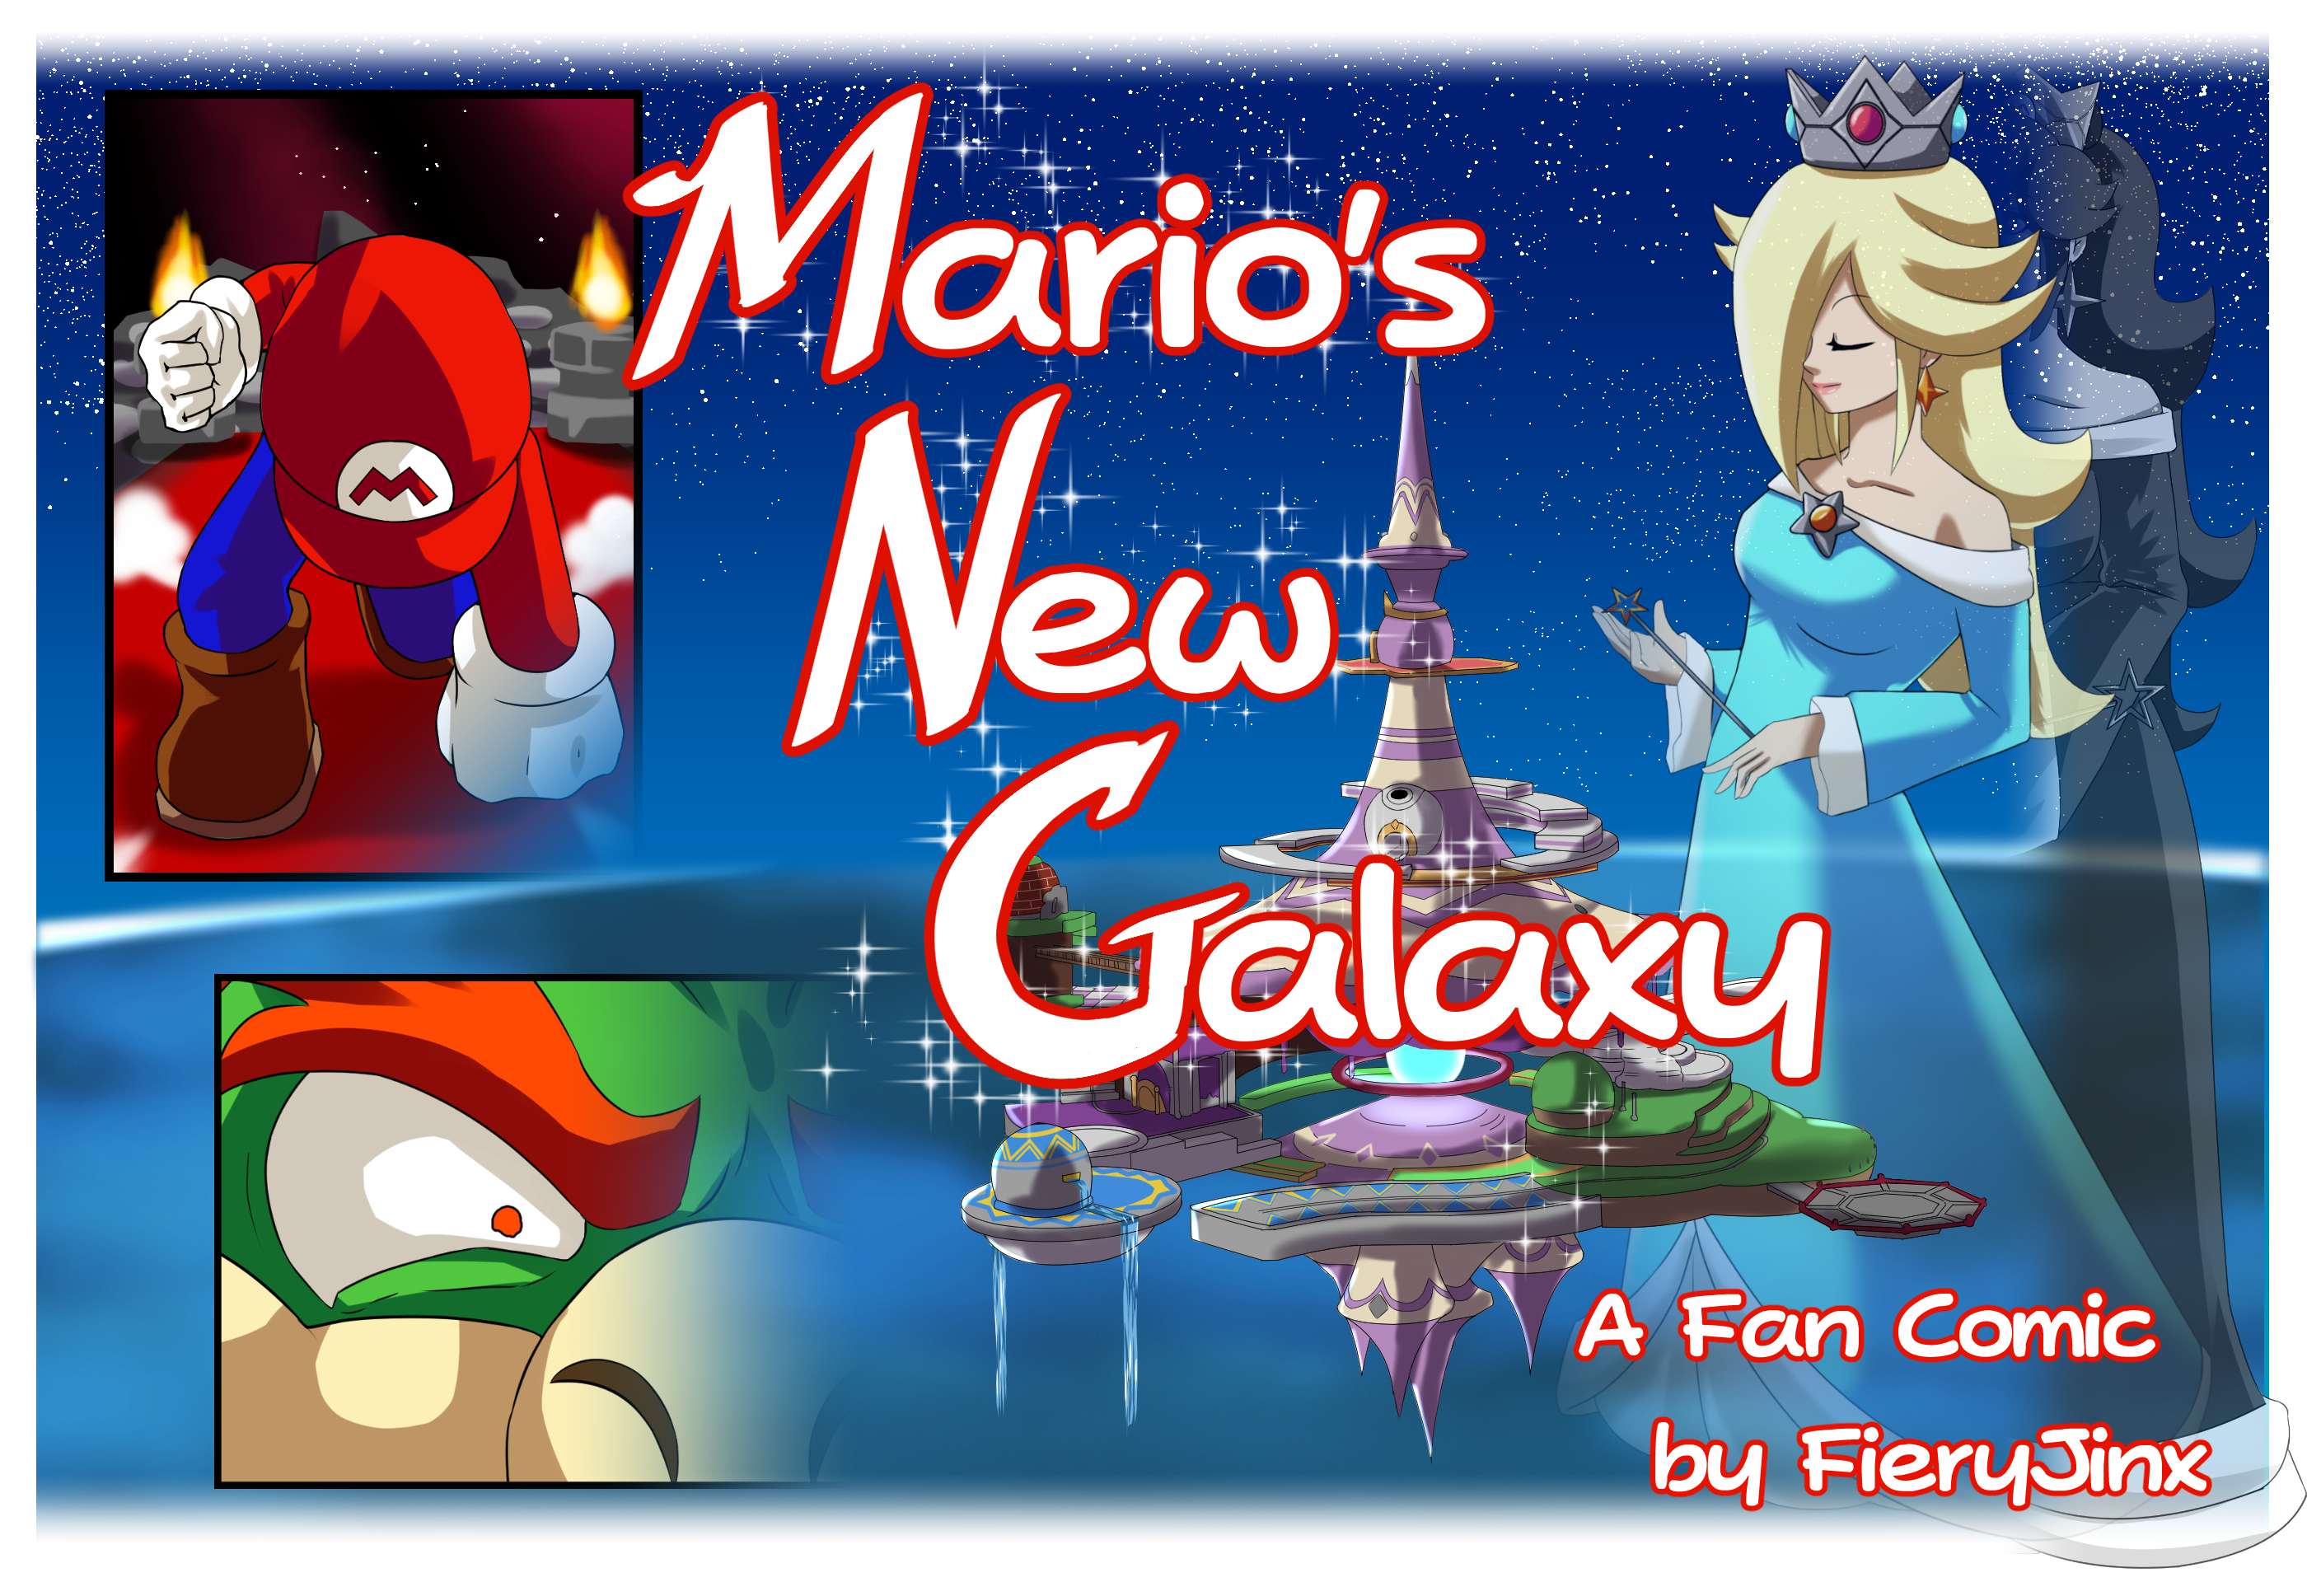 Mario S New Galaxy A Mario Tg Story By Fieryjinx Devoted exclusively to the tg comic heroine mantra, the first tg heroine to get her very own comic book! mario s new galaxy a mario tg story